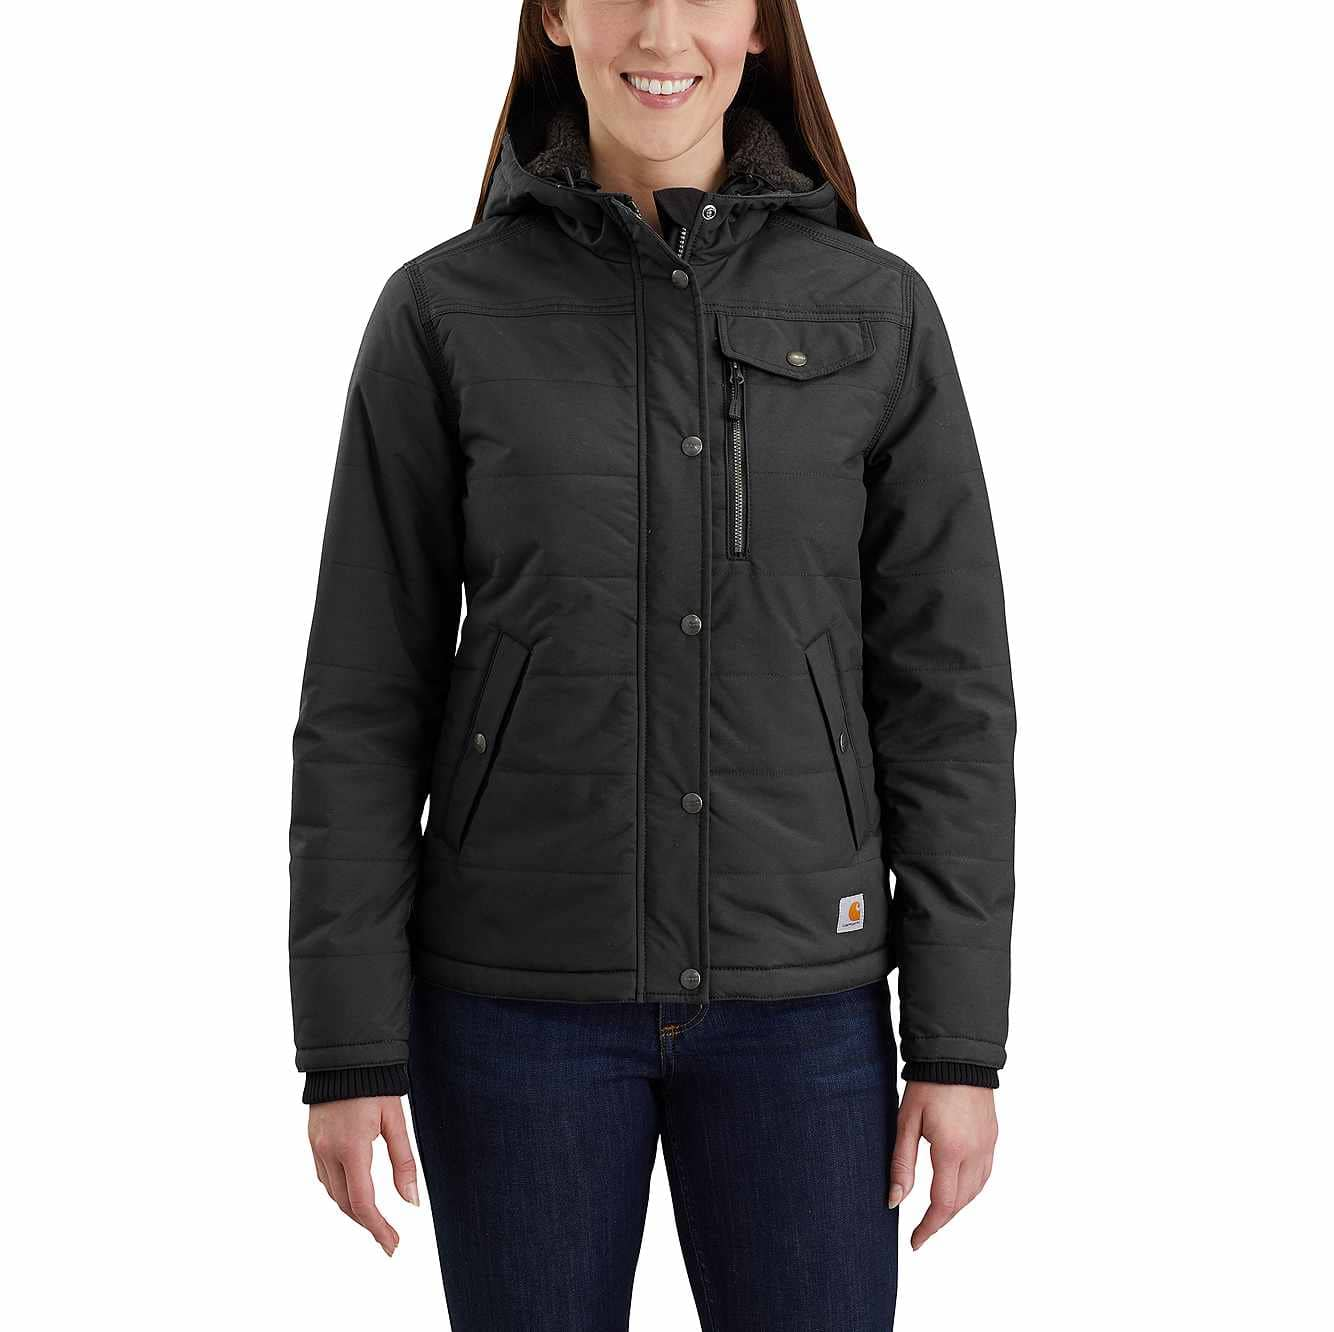 Picture of Utility Jacket in Black